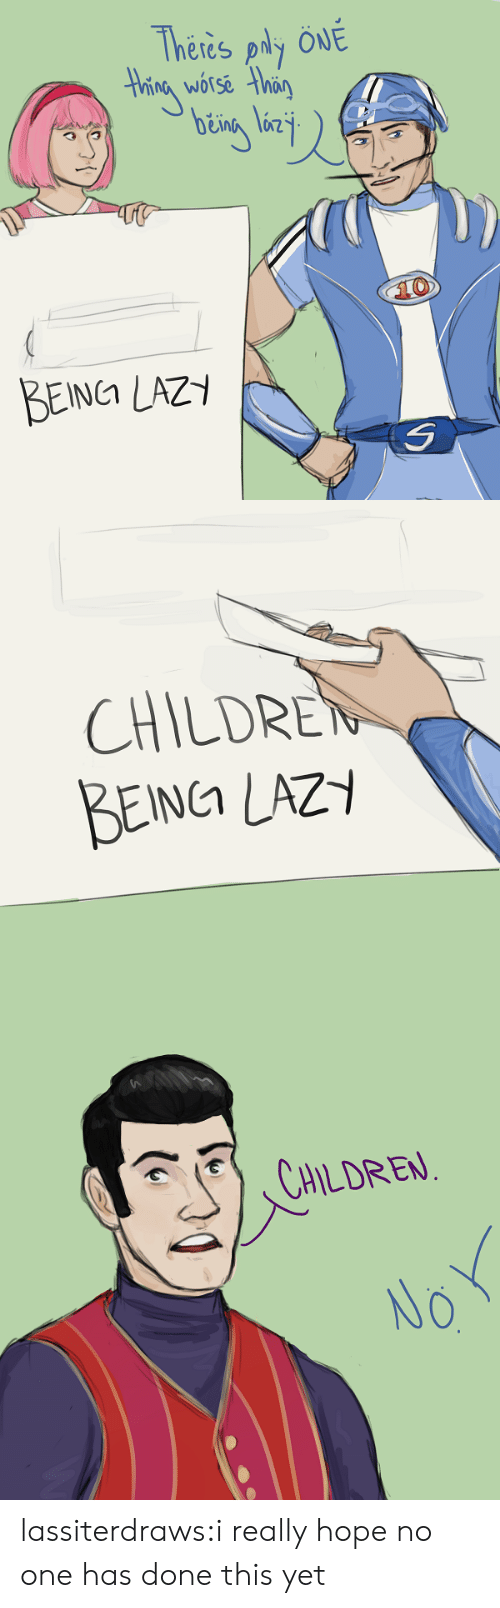 Really Hope: Theres ply ÖNE  Hhing worse than  10  BEINCA LAZY   CHILDREN  BEING LAZY   CHILDREN  NO lassiterdraws:i really hope no one has done this yet